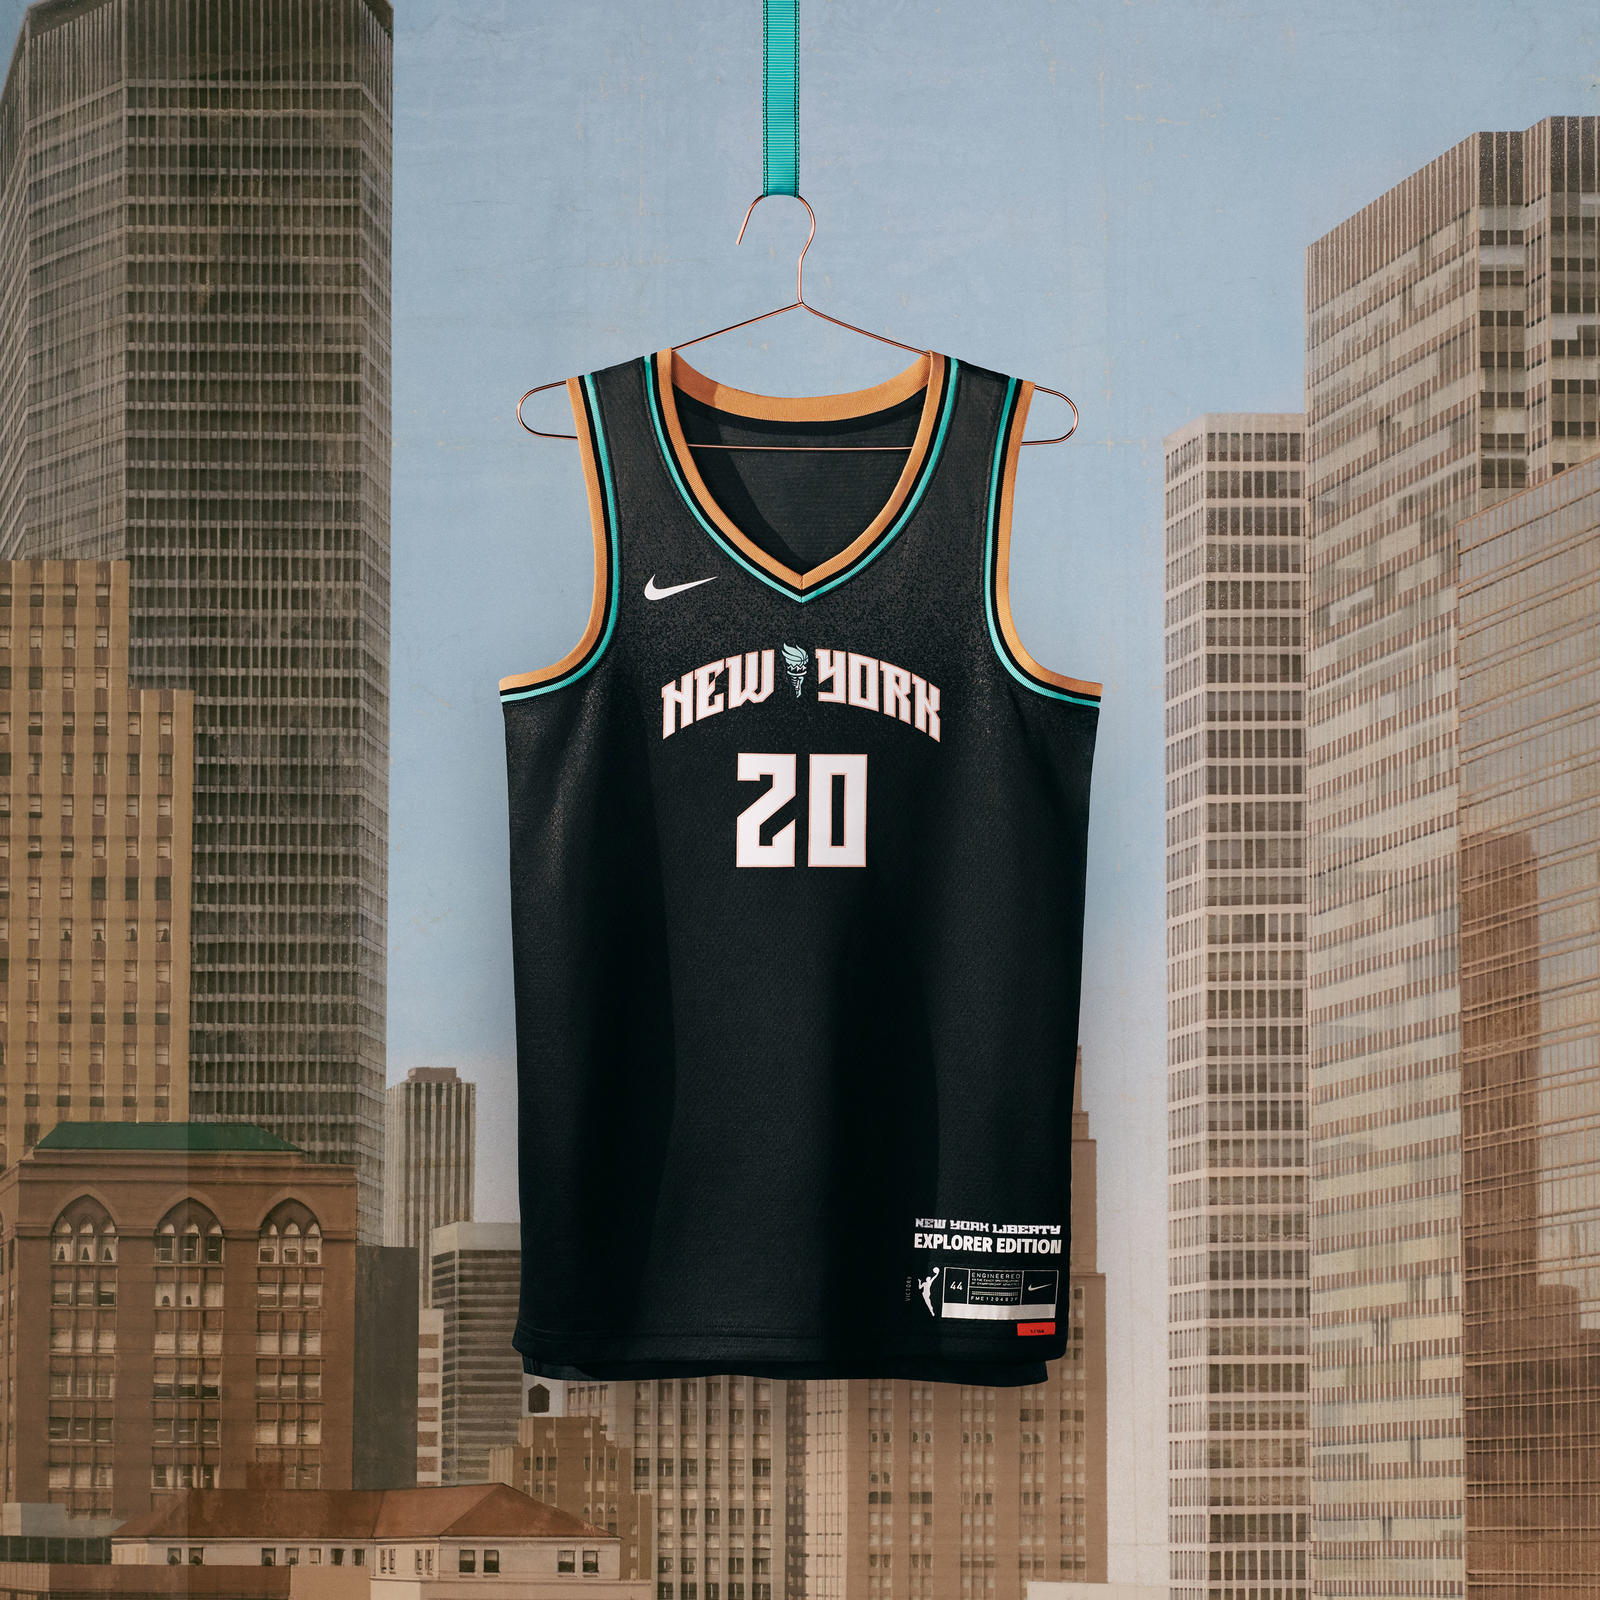 Nike WNBA 2021 Uniform Editions  15